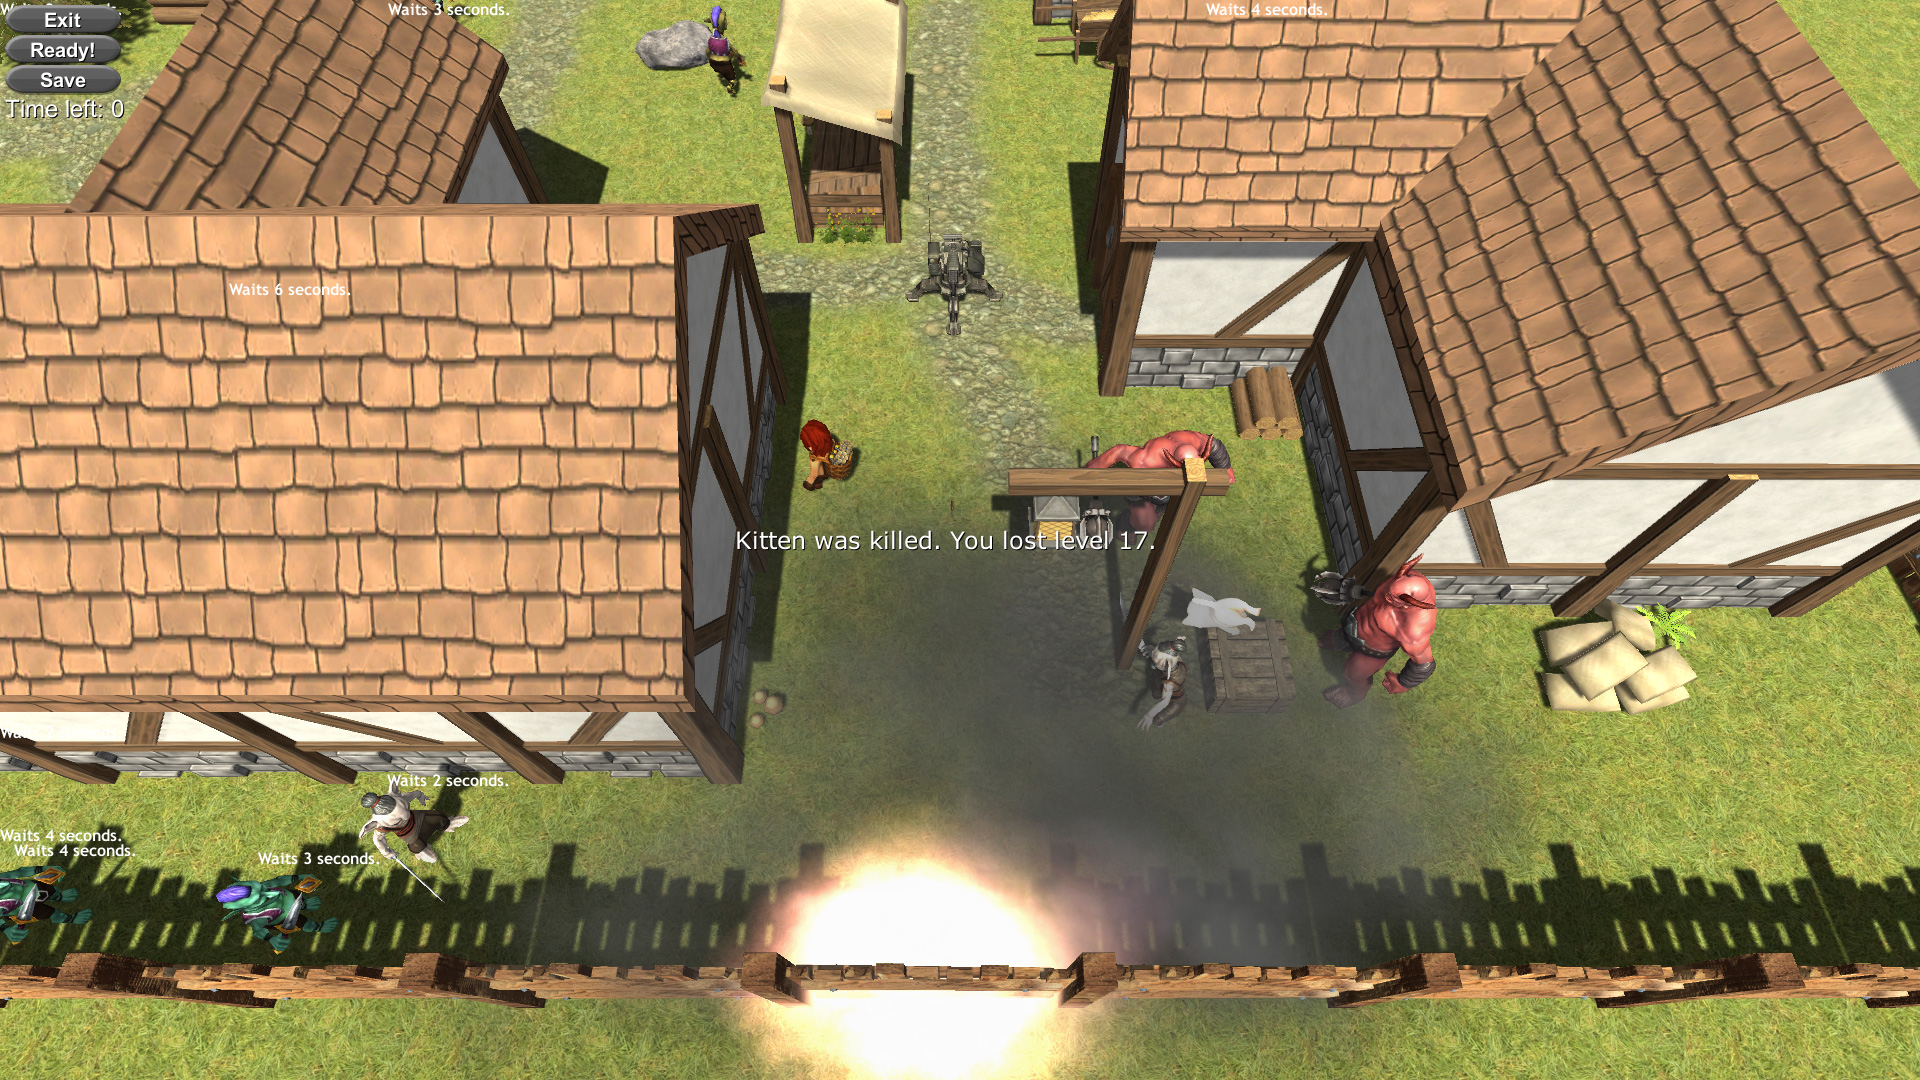 Download strategy games rpg games at mitorah games winlinuxmac thecheapjerseys Images